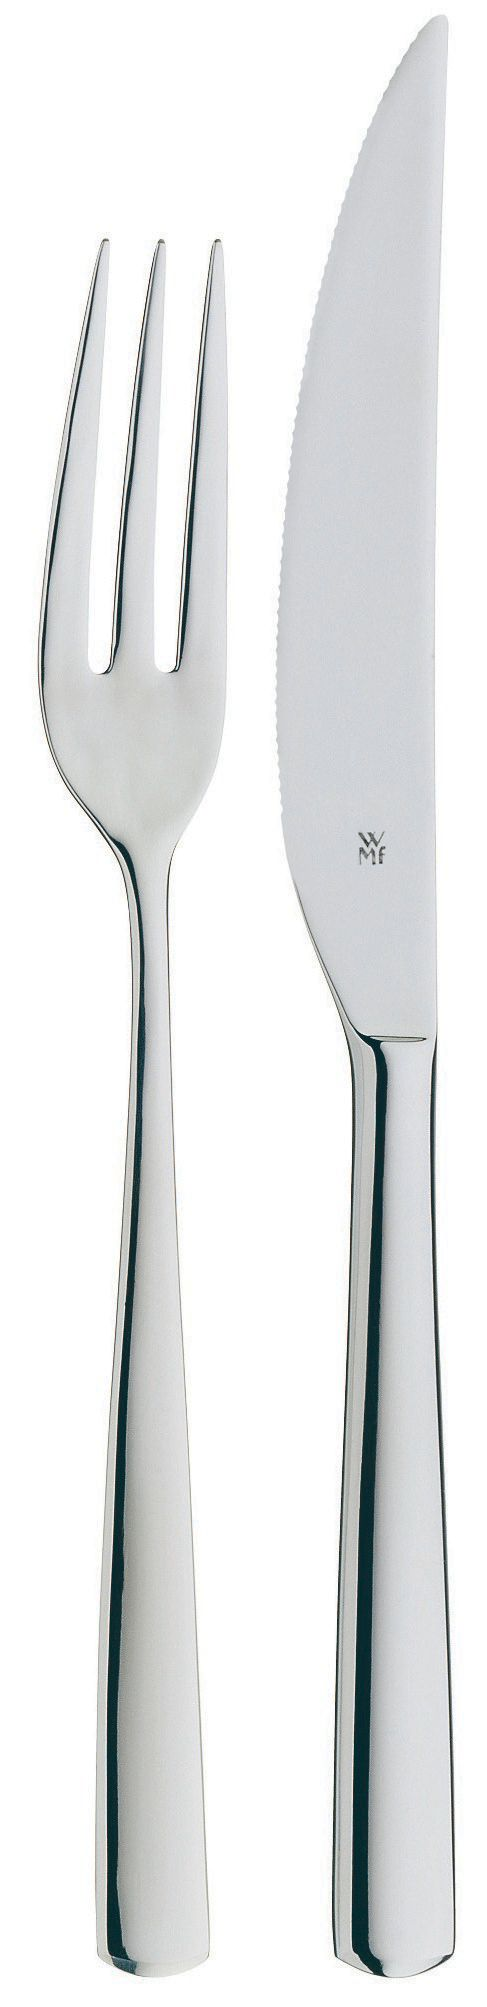 Bistro steak knife & fork 22 cm